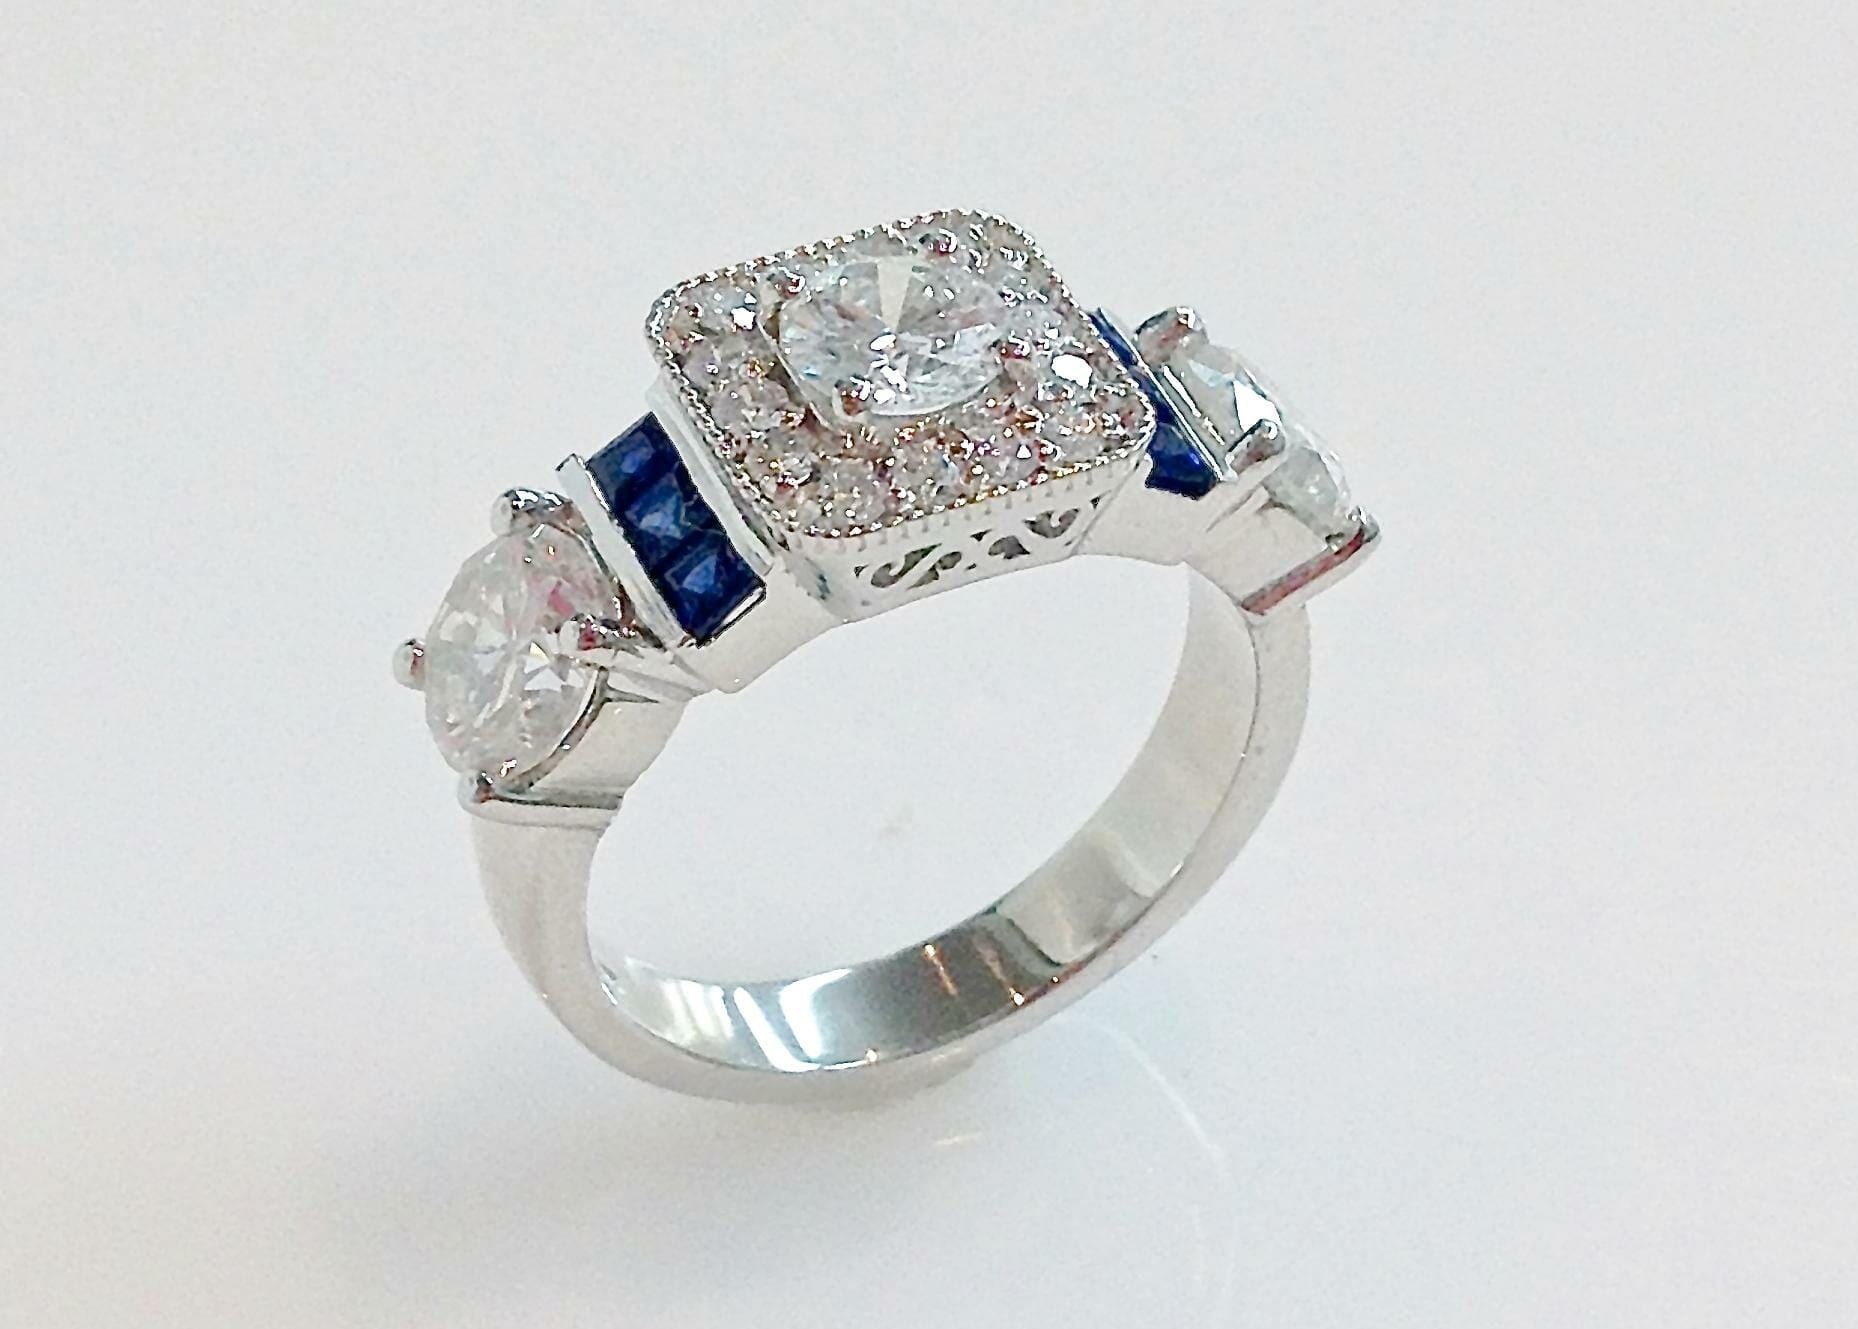 whiteview engagement pear account madrid rings points diamond square to earn an create cut accented ring or login